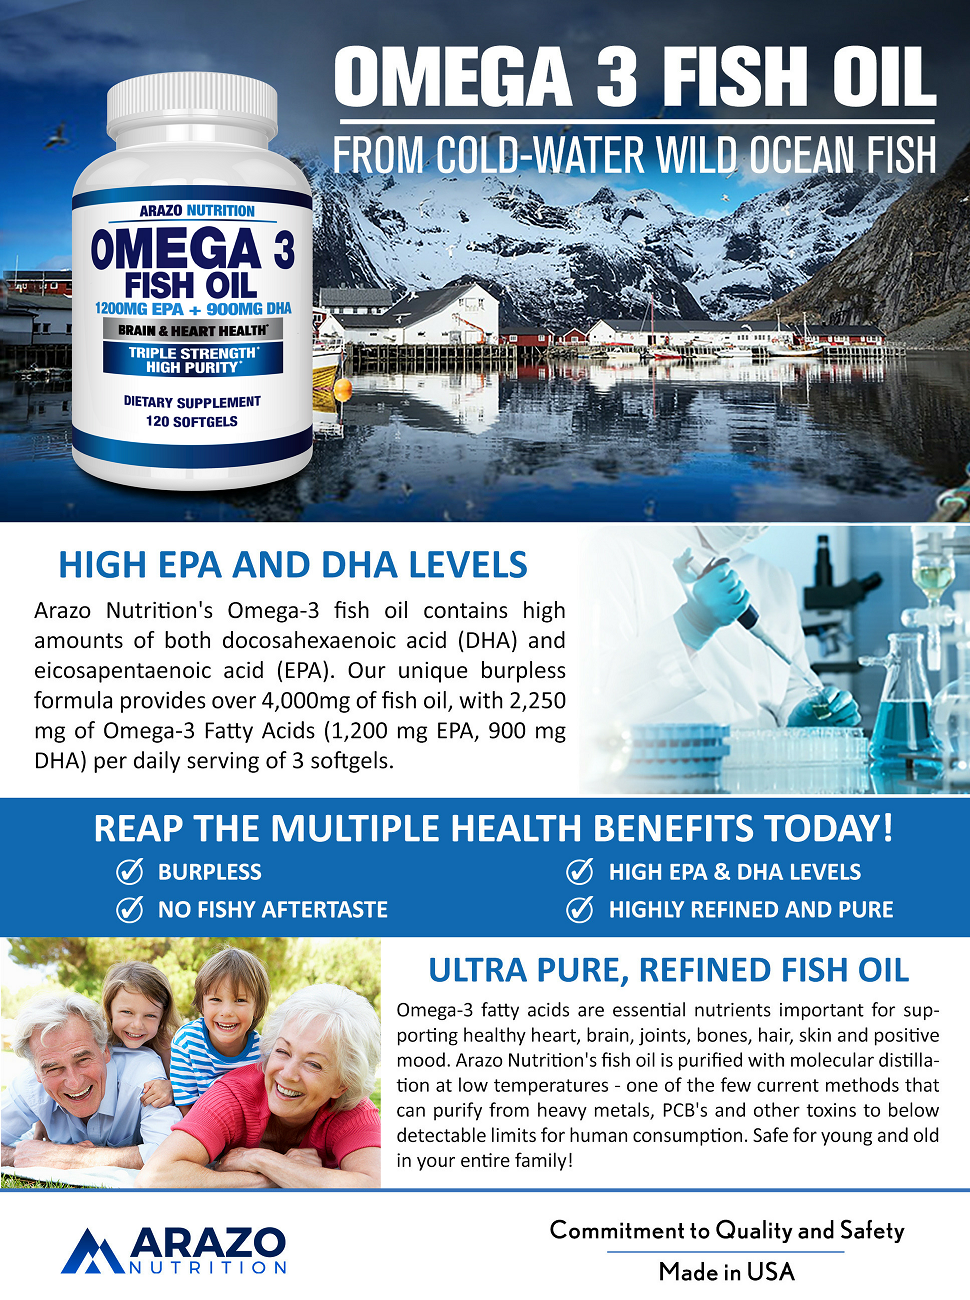 Omega 3 Fish Oil 2250mg | HIGH EPA 1200MG + DHA 900MG Triple Strength Burpless Capsules